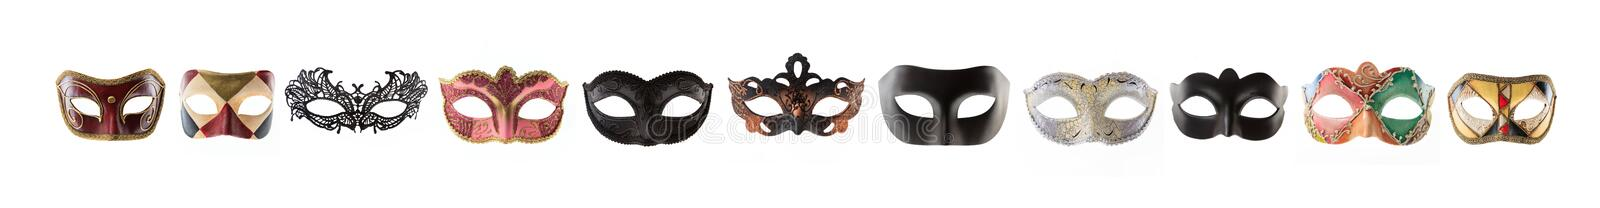 Carnival masks collage isolated on white background royalty free stock photo